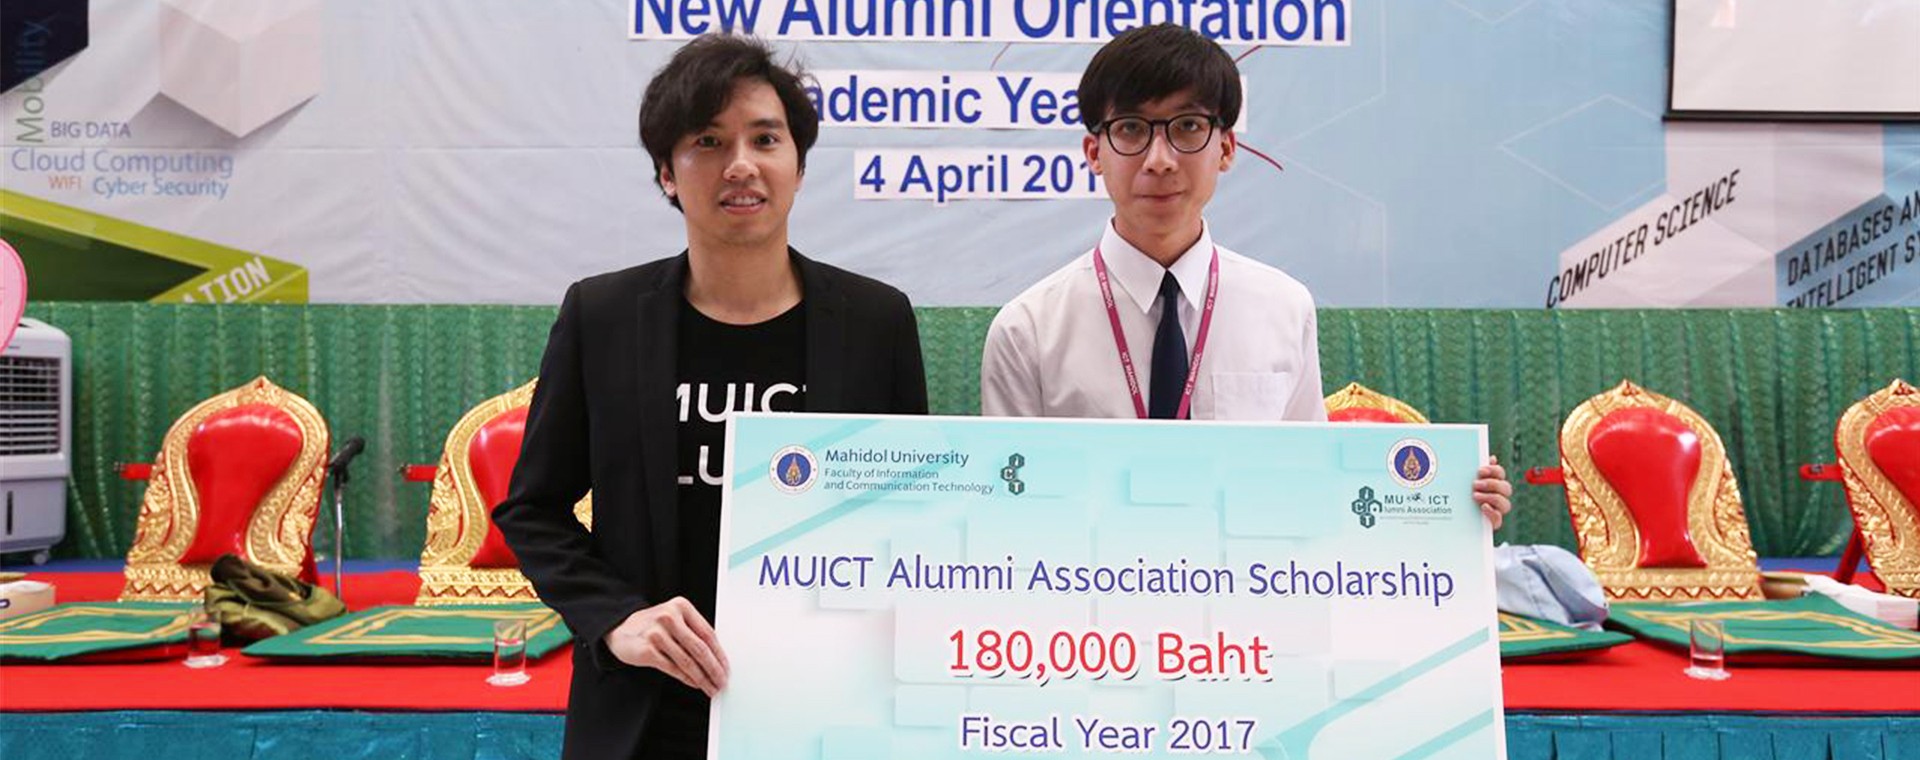 MUICT Alumni Scholarship Fiscal Year 2017